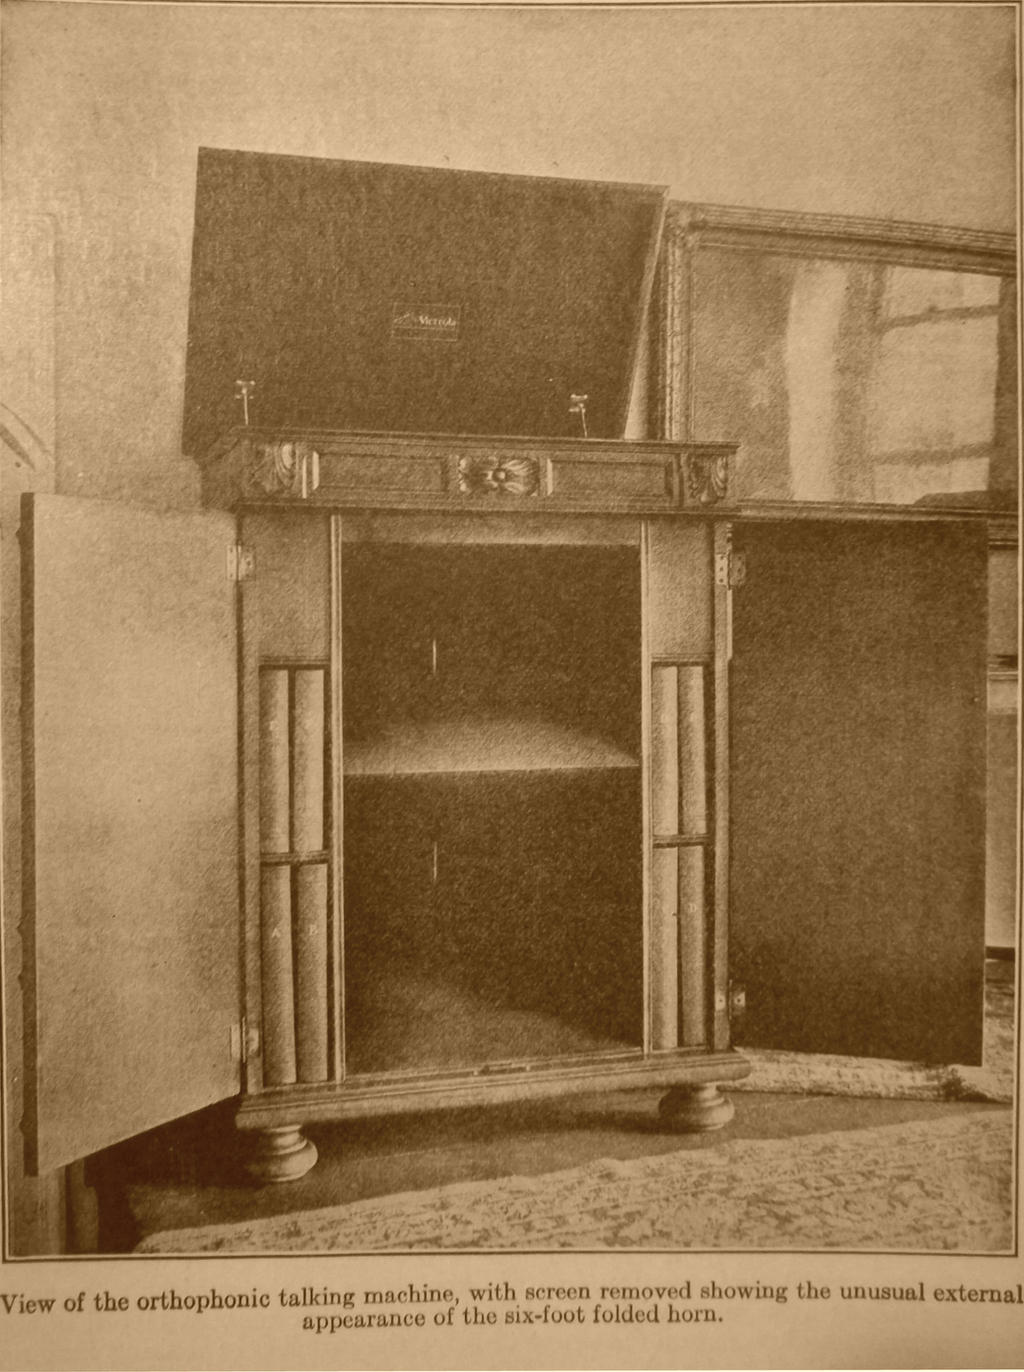 Victor Victrola, 1925 Production Credenza by PRR8157